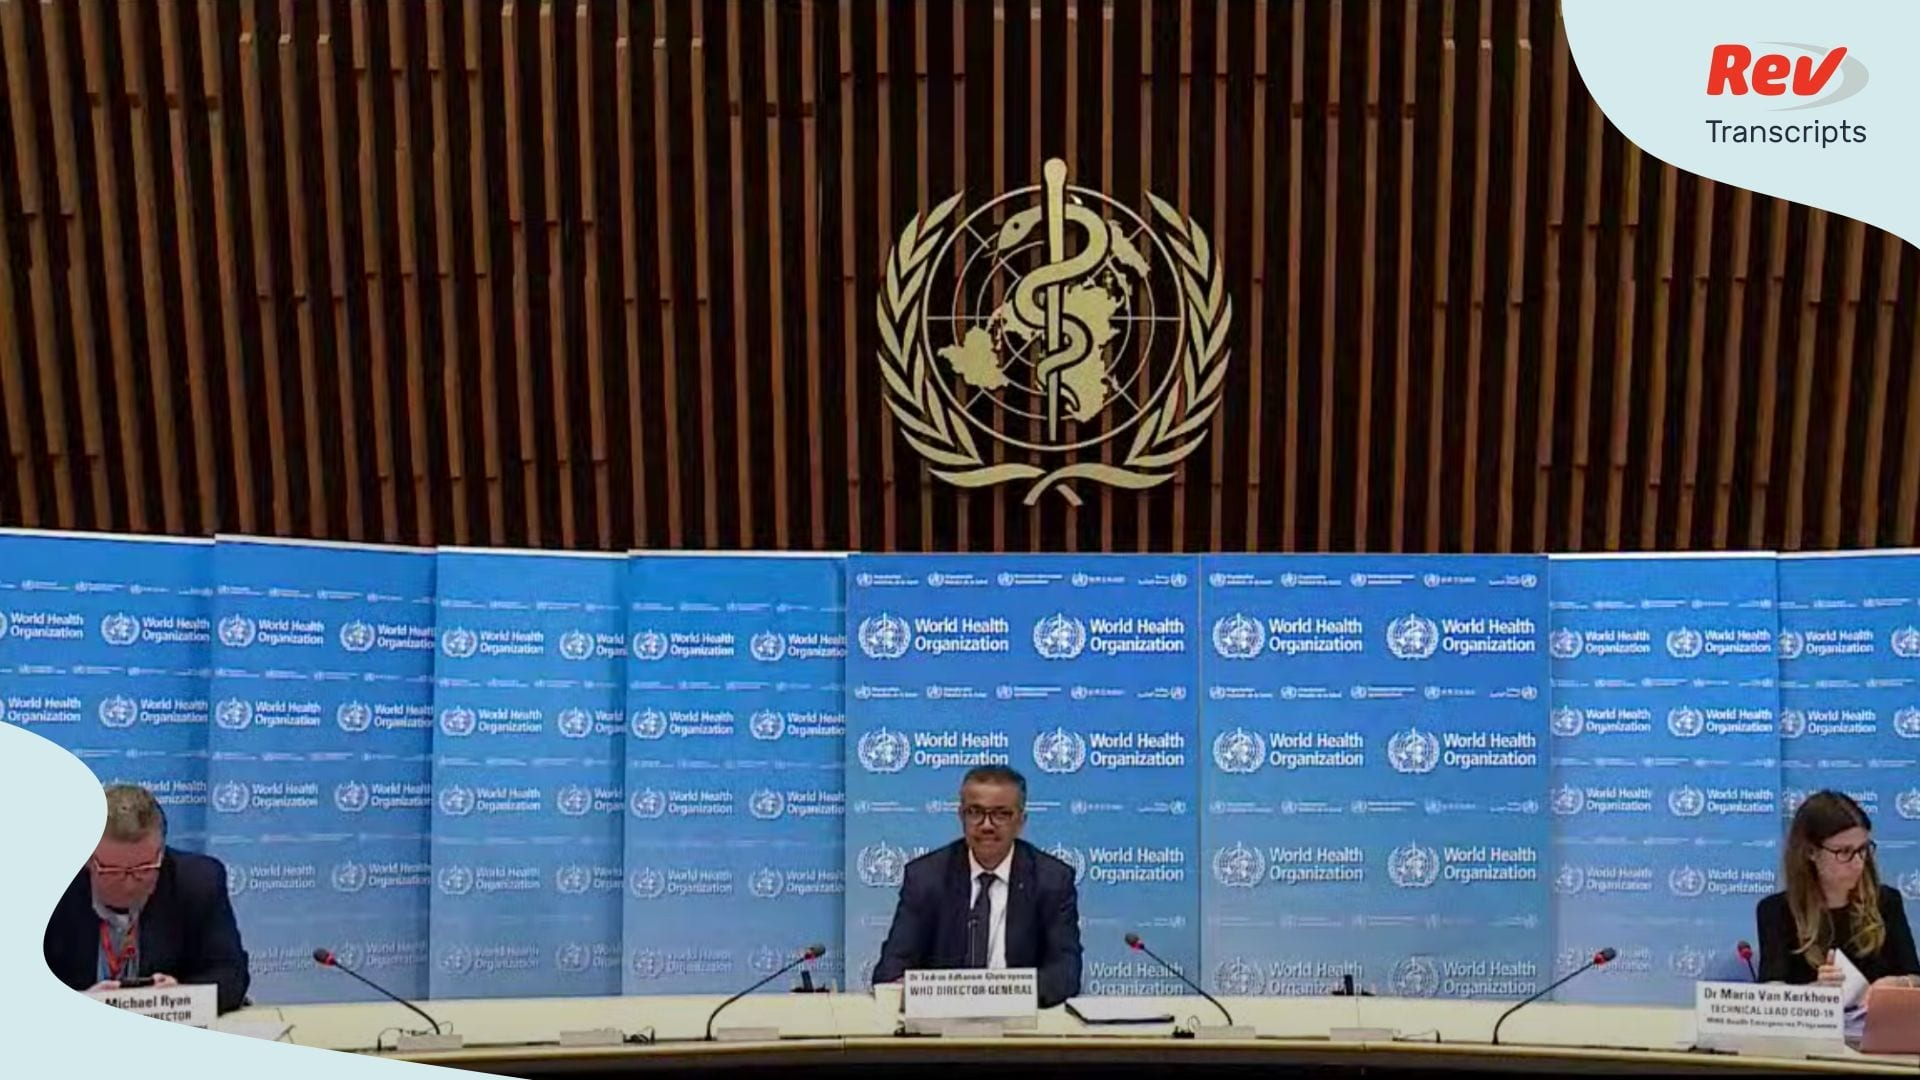 World Health Organization Press Conference June 22